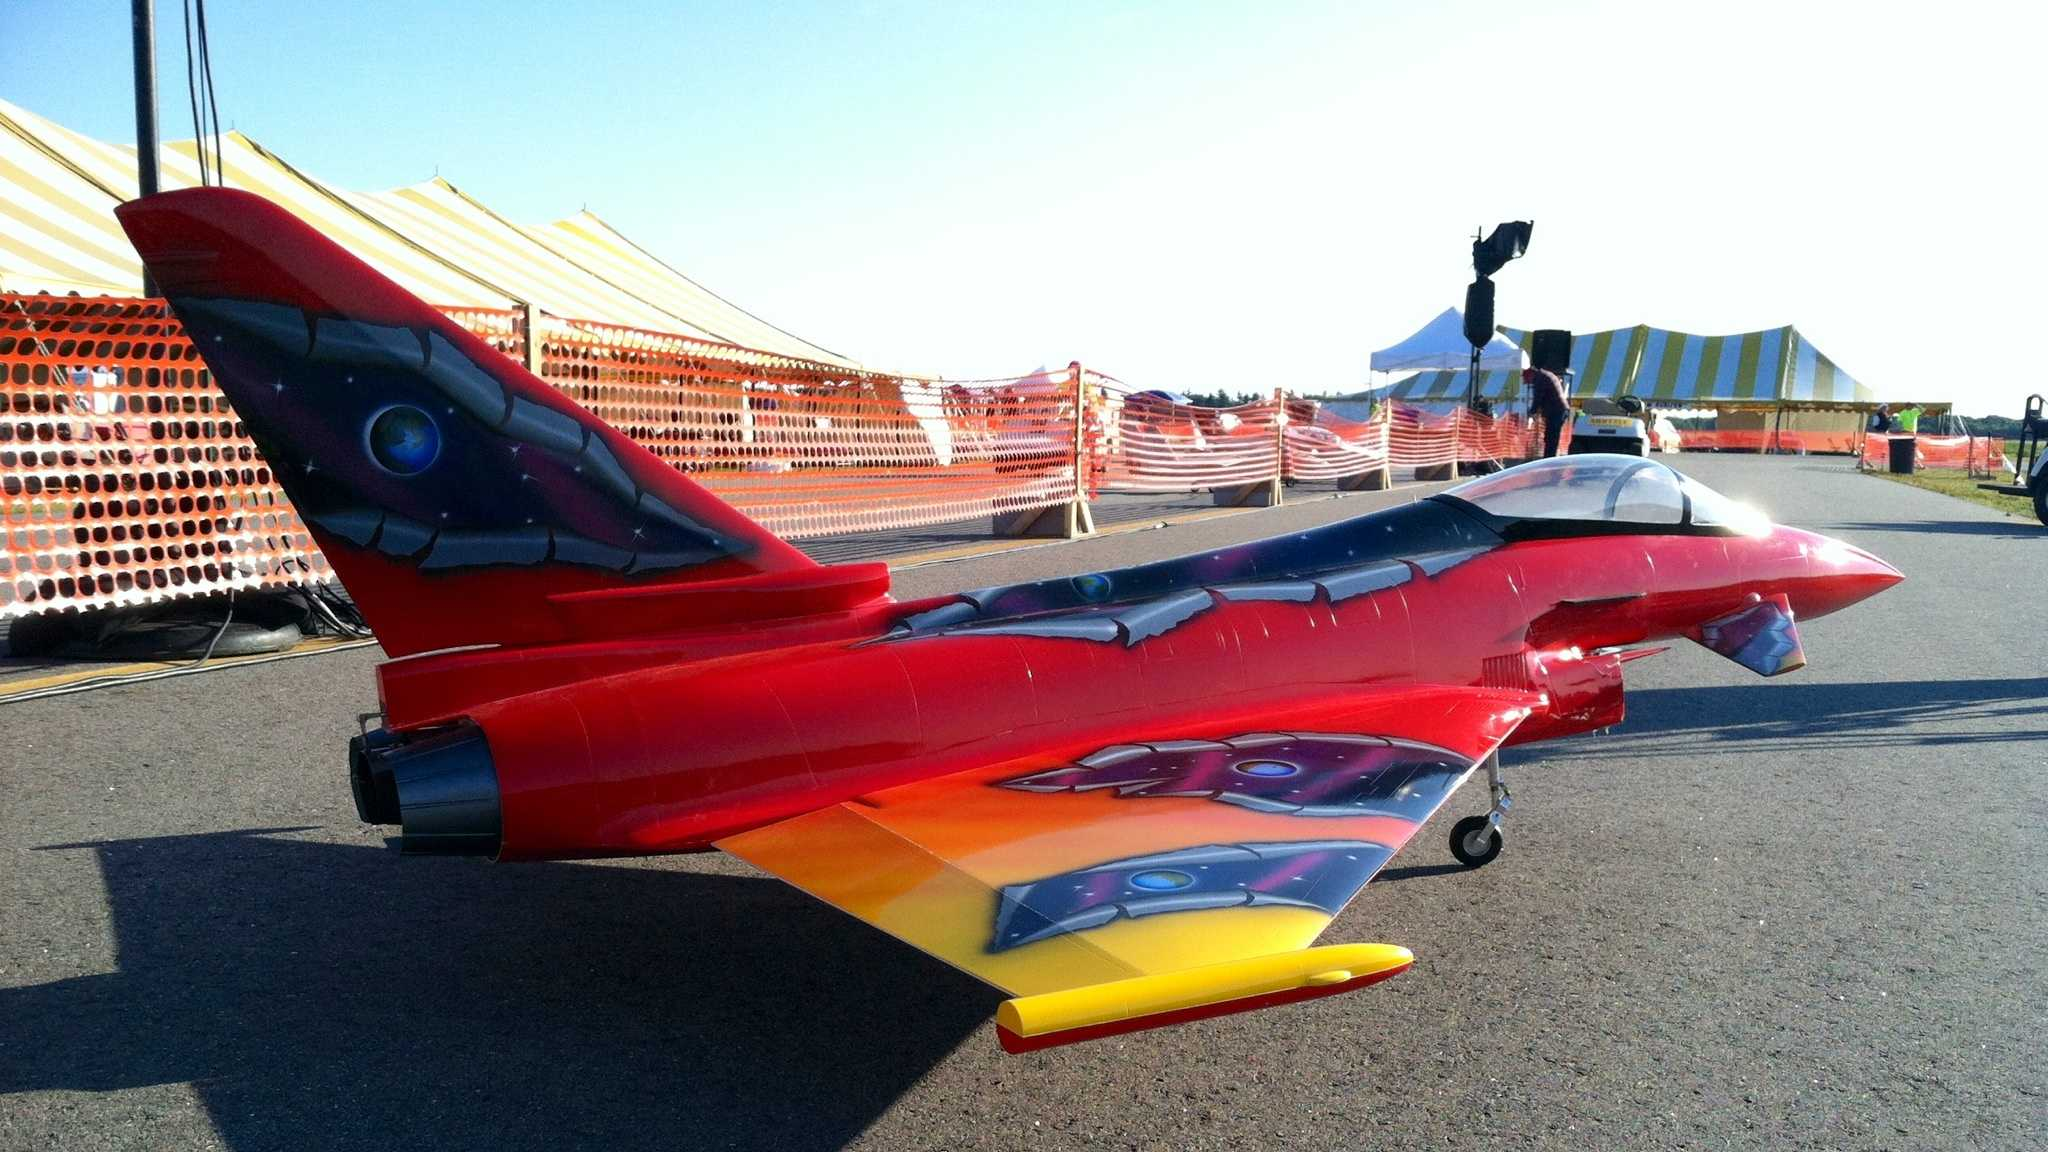 Maine Jet Rally and Model Expo